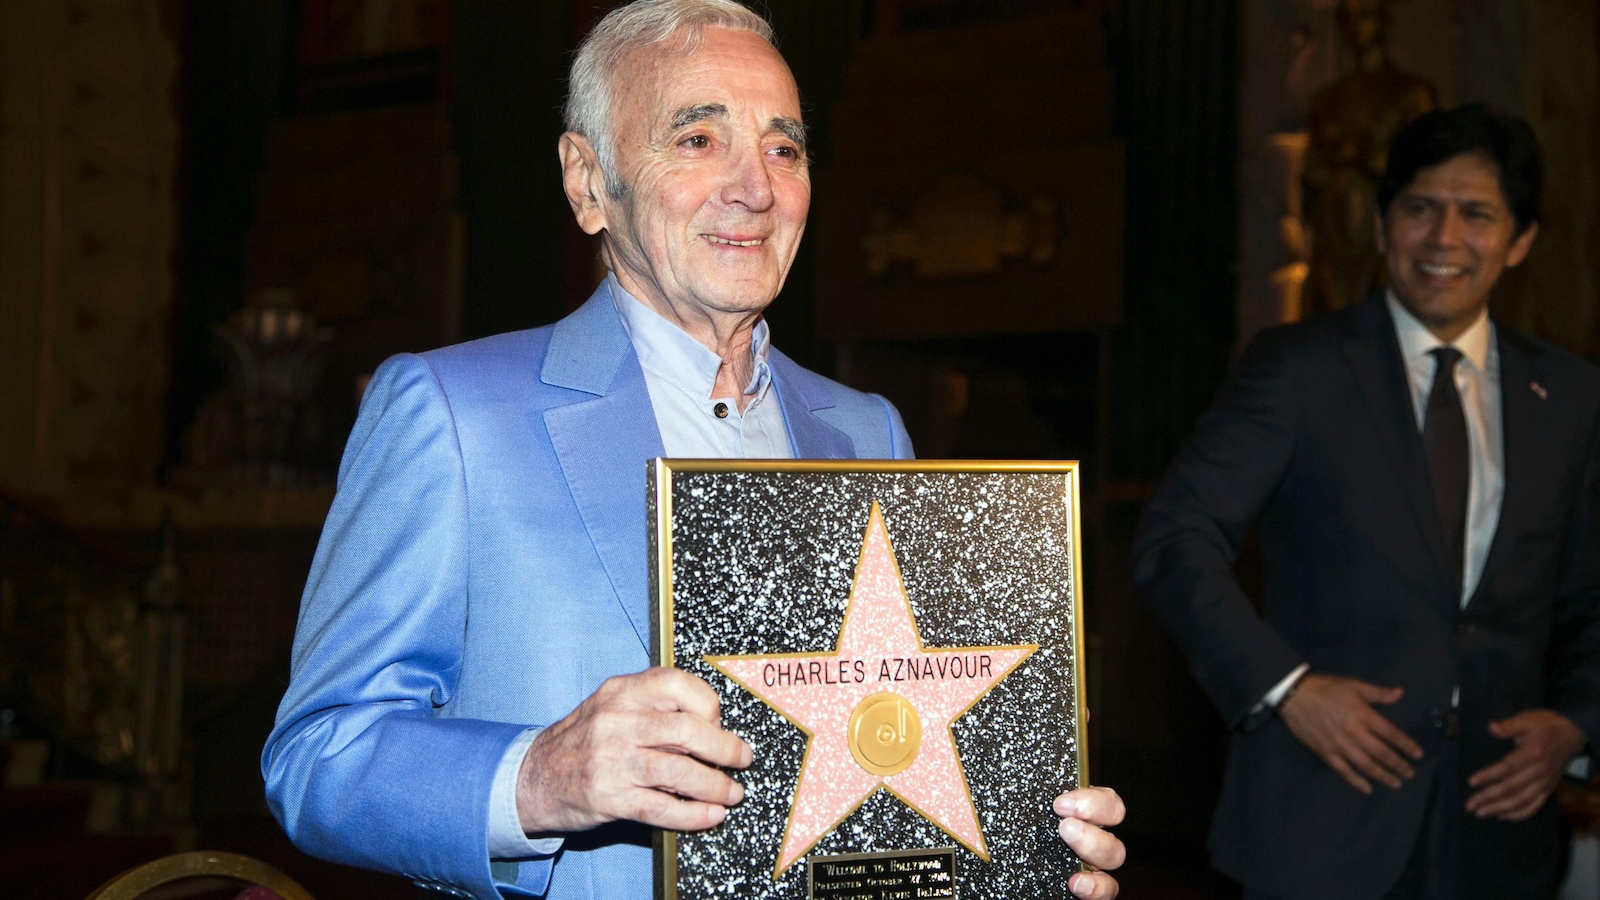 Charles Aznavour tient la plaque honorifique qu'il a reçue au Hollywood Pantages à Hollywood le 27 octobre 2016